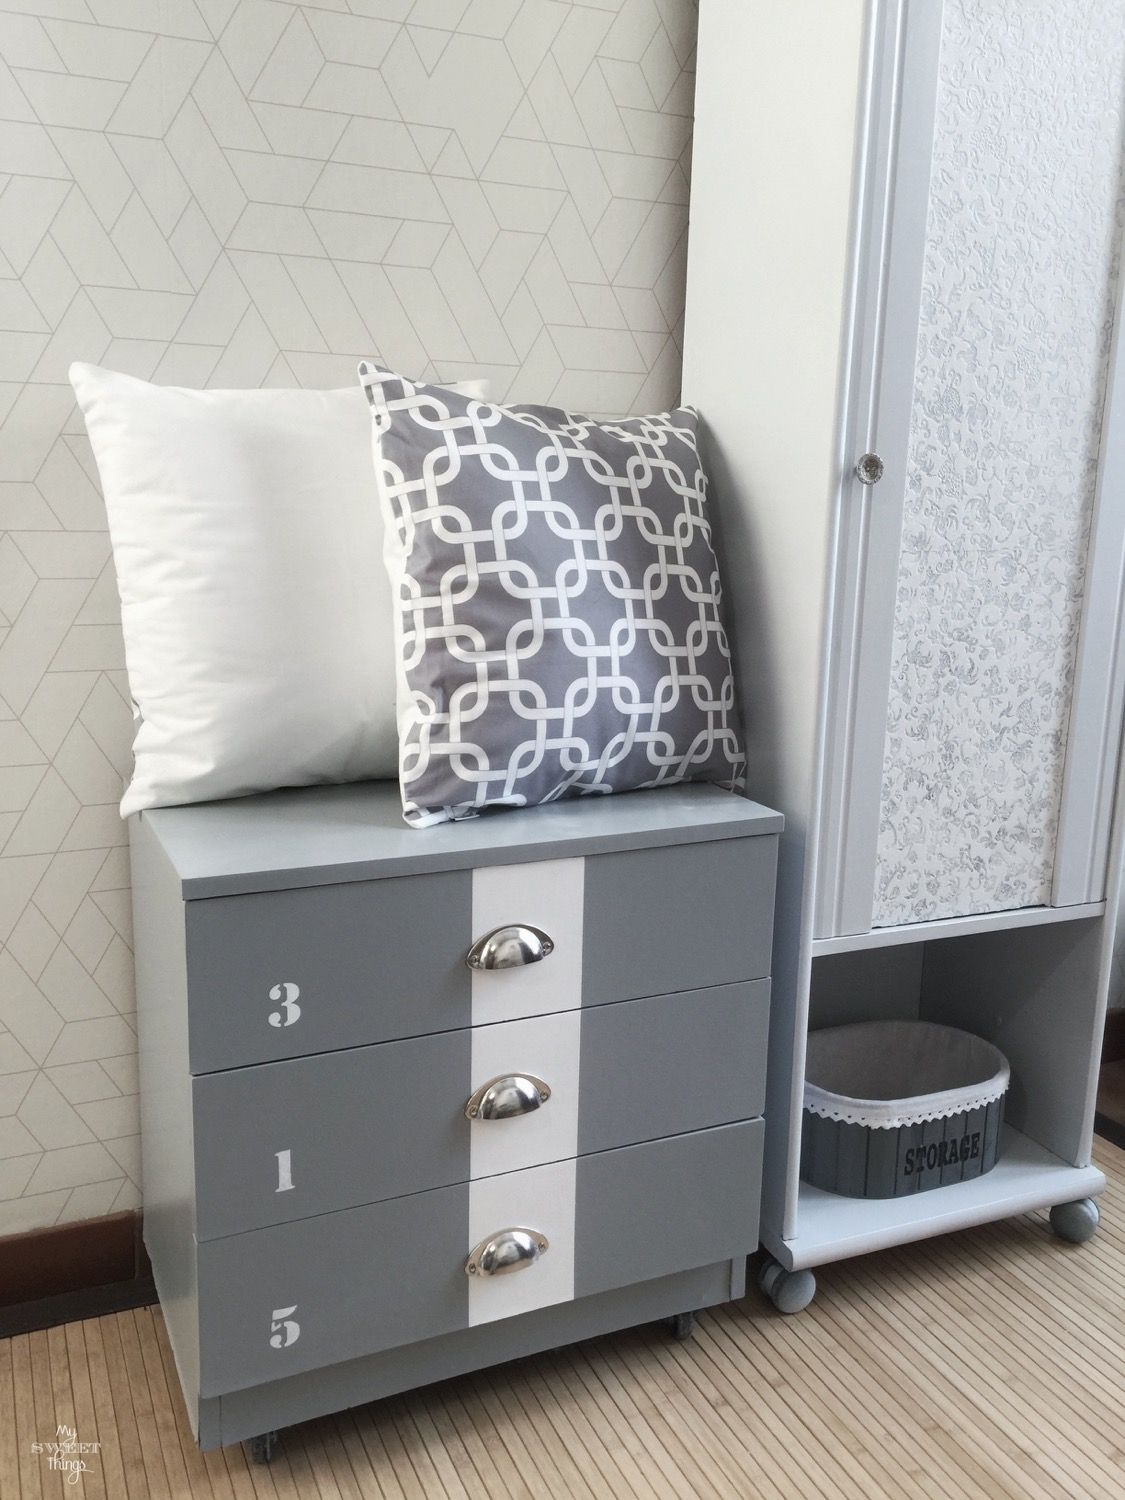 Industrial Style Dresser Makeover Tarva Ikea Hack Inspired My Sweet Things